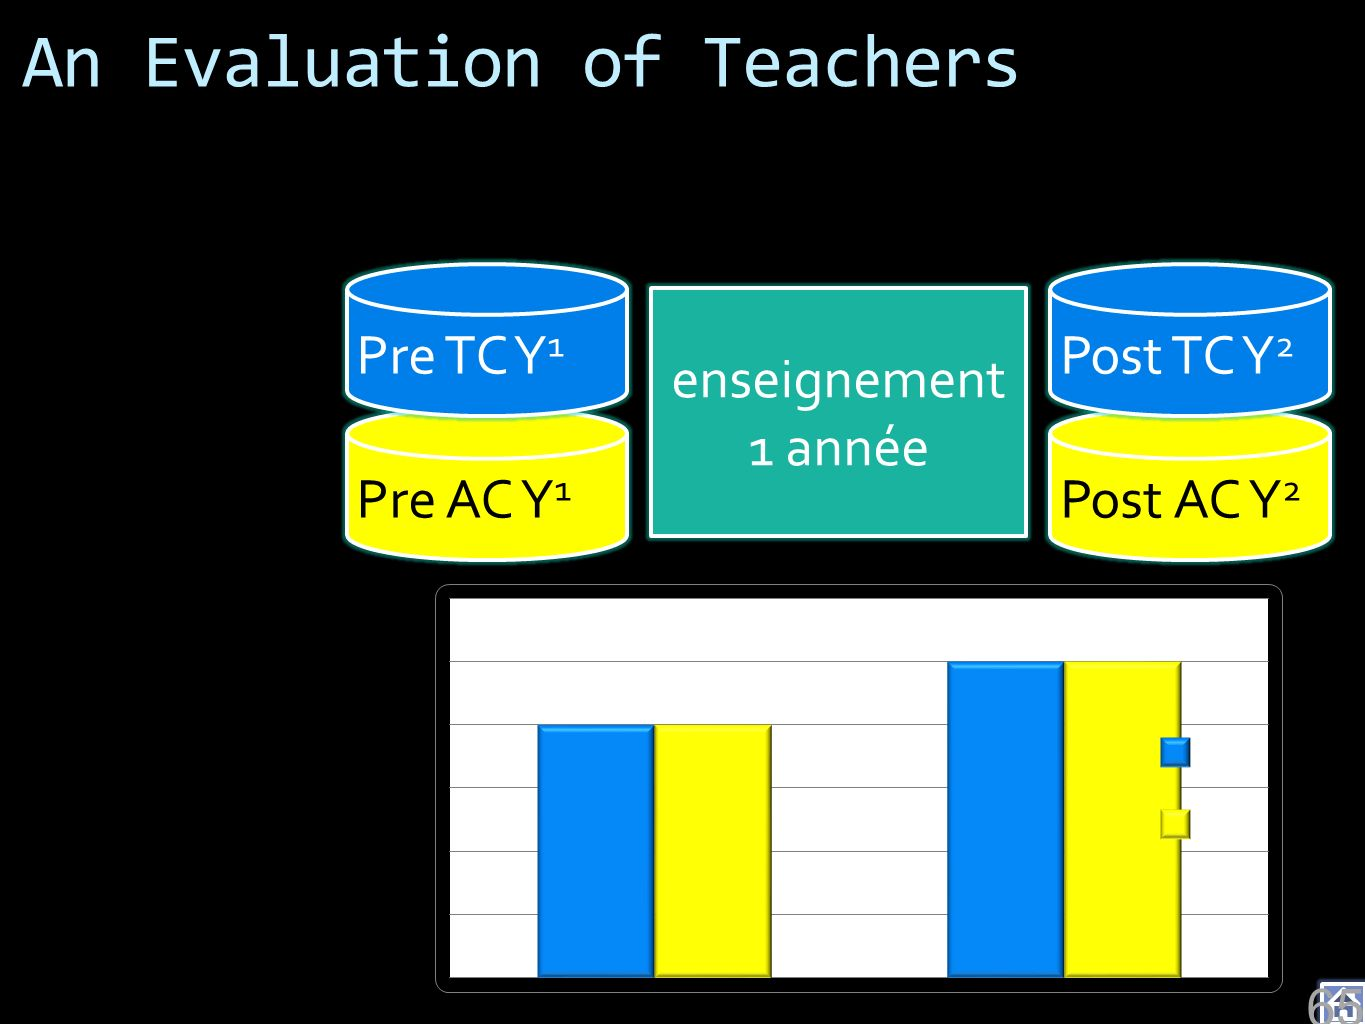 An Evaluation of Teachers